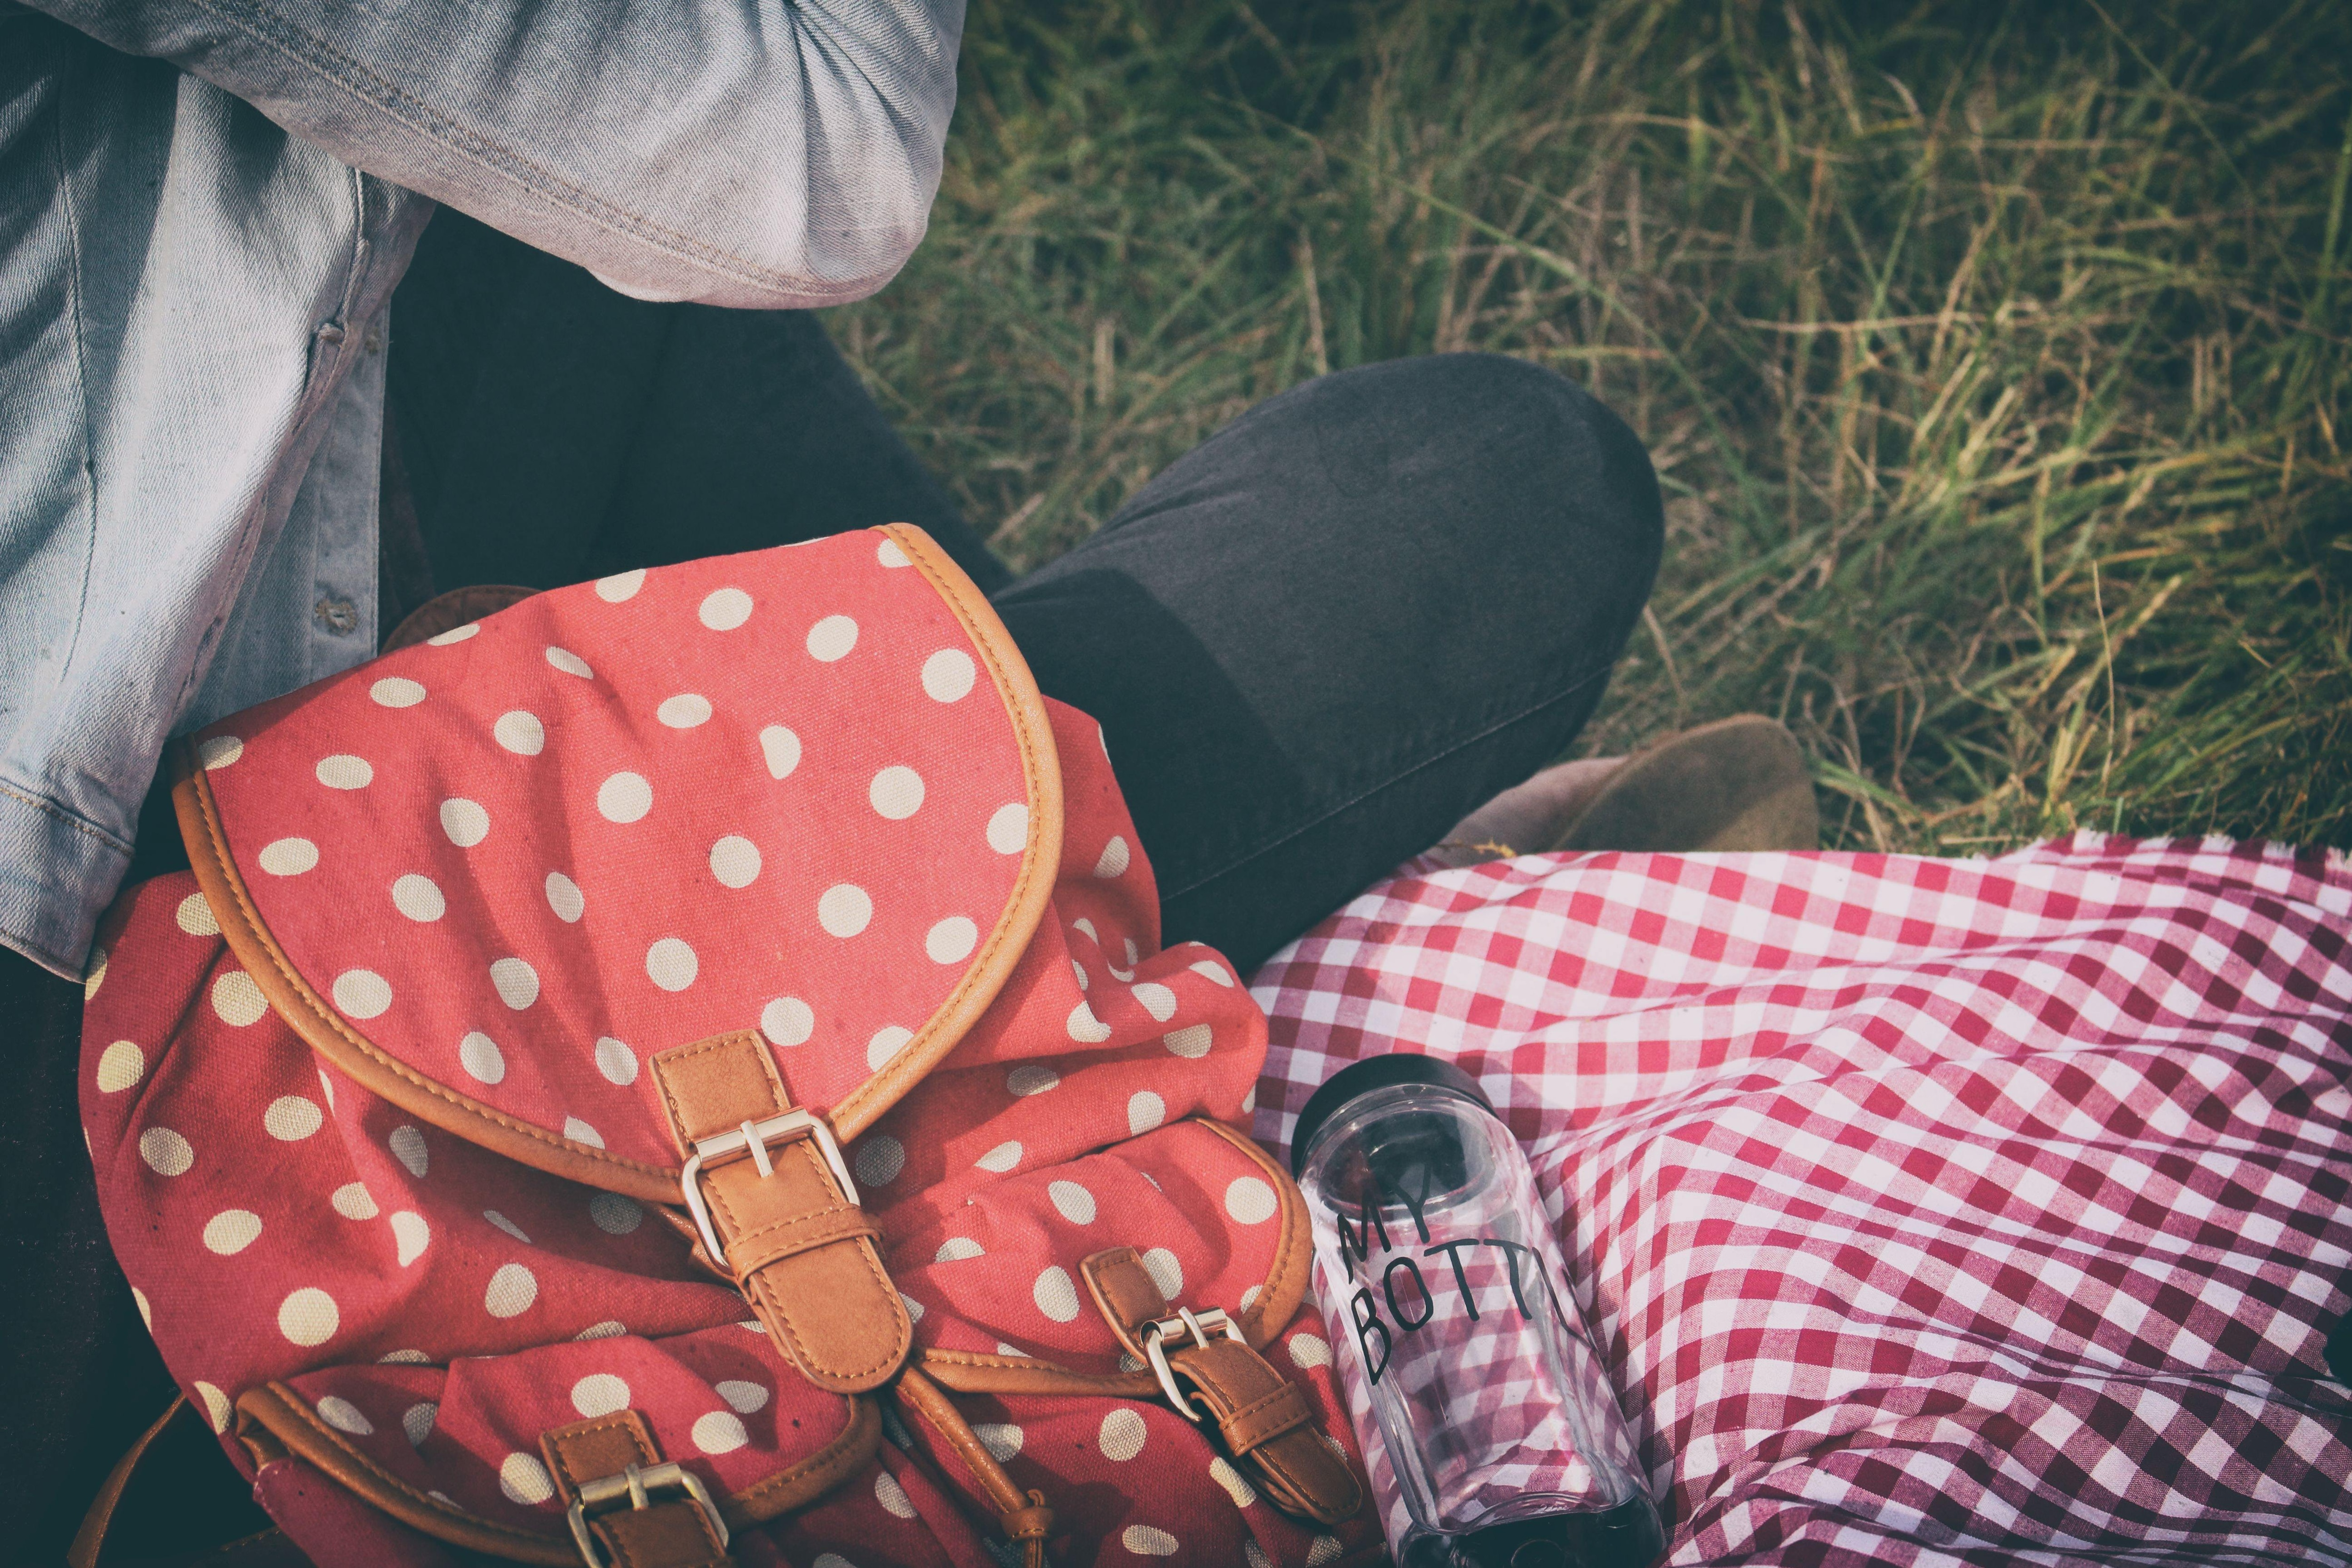 Woman sitting on a read and white checked picnic planket with a plastic water bottle and a backpack